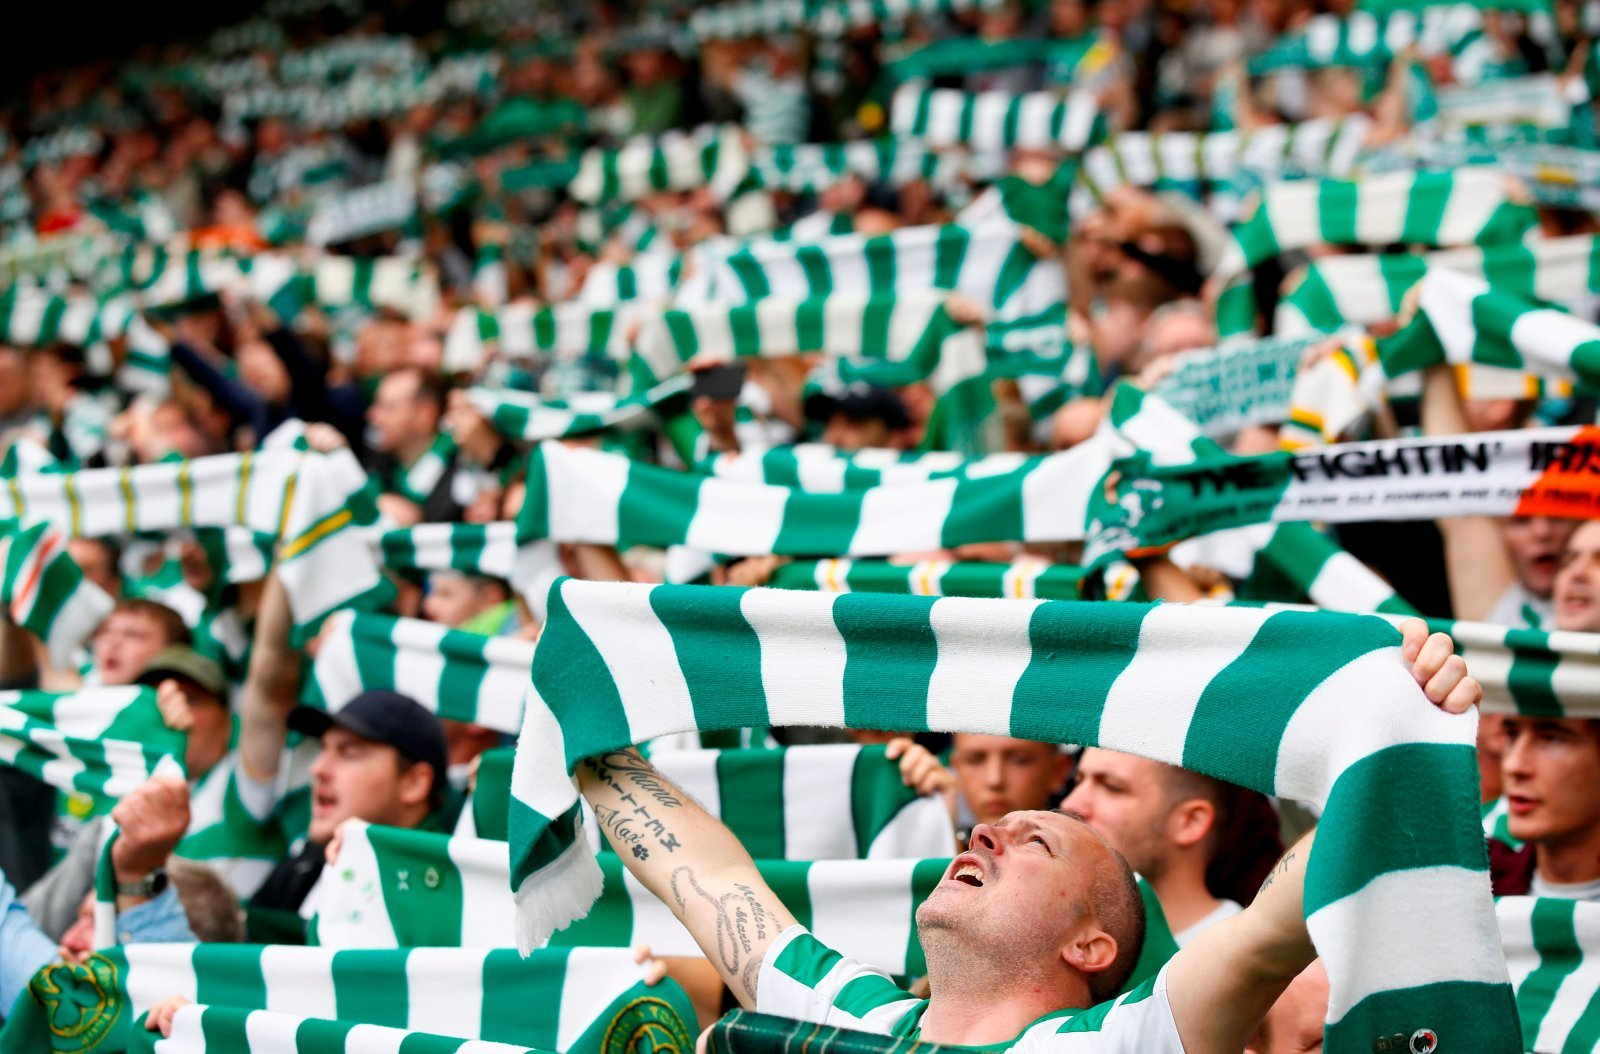 Celtic fans demand signings after being drawn Valencia in Europa League